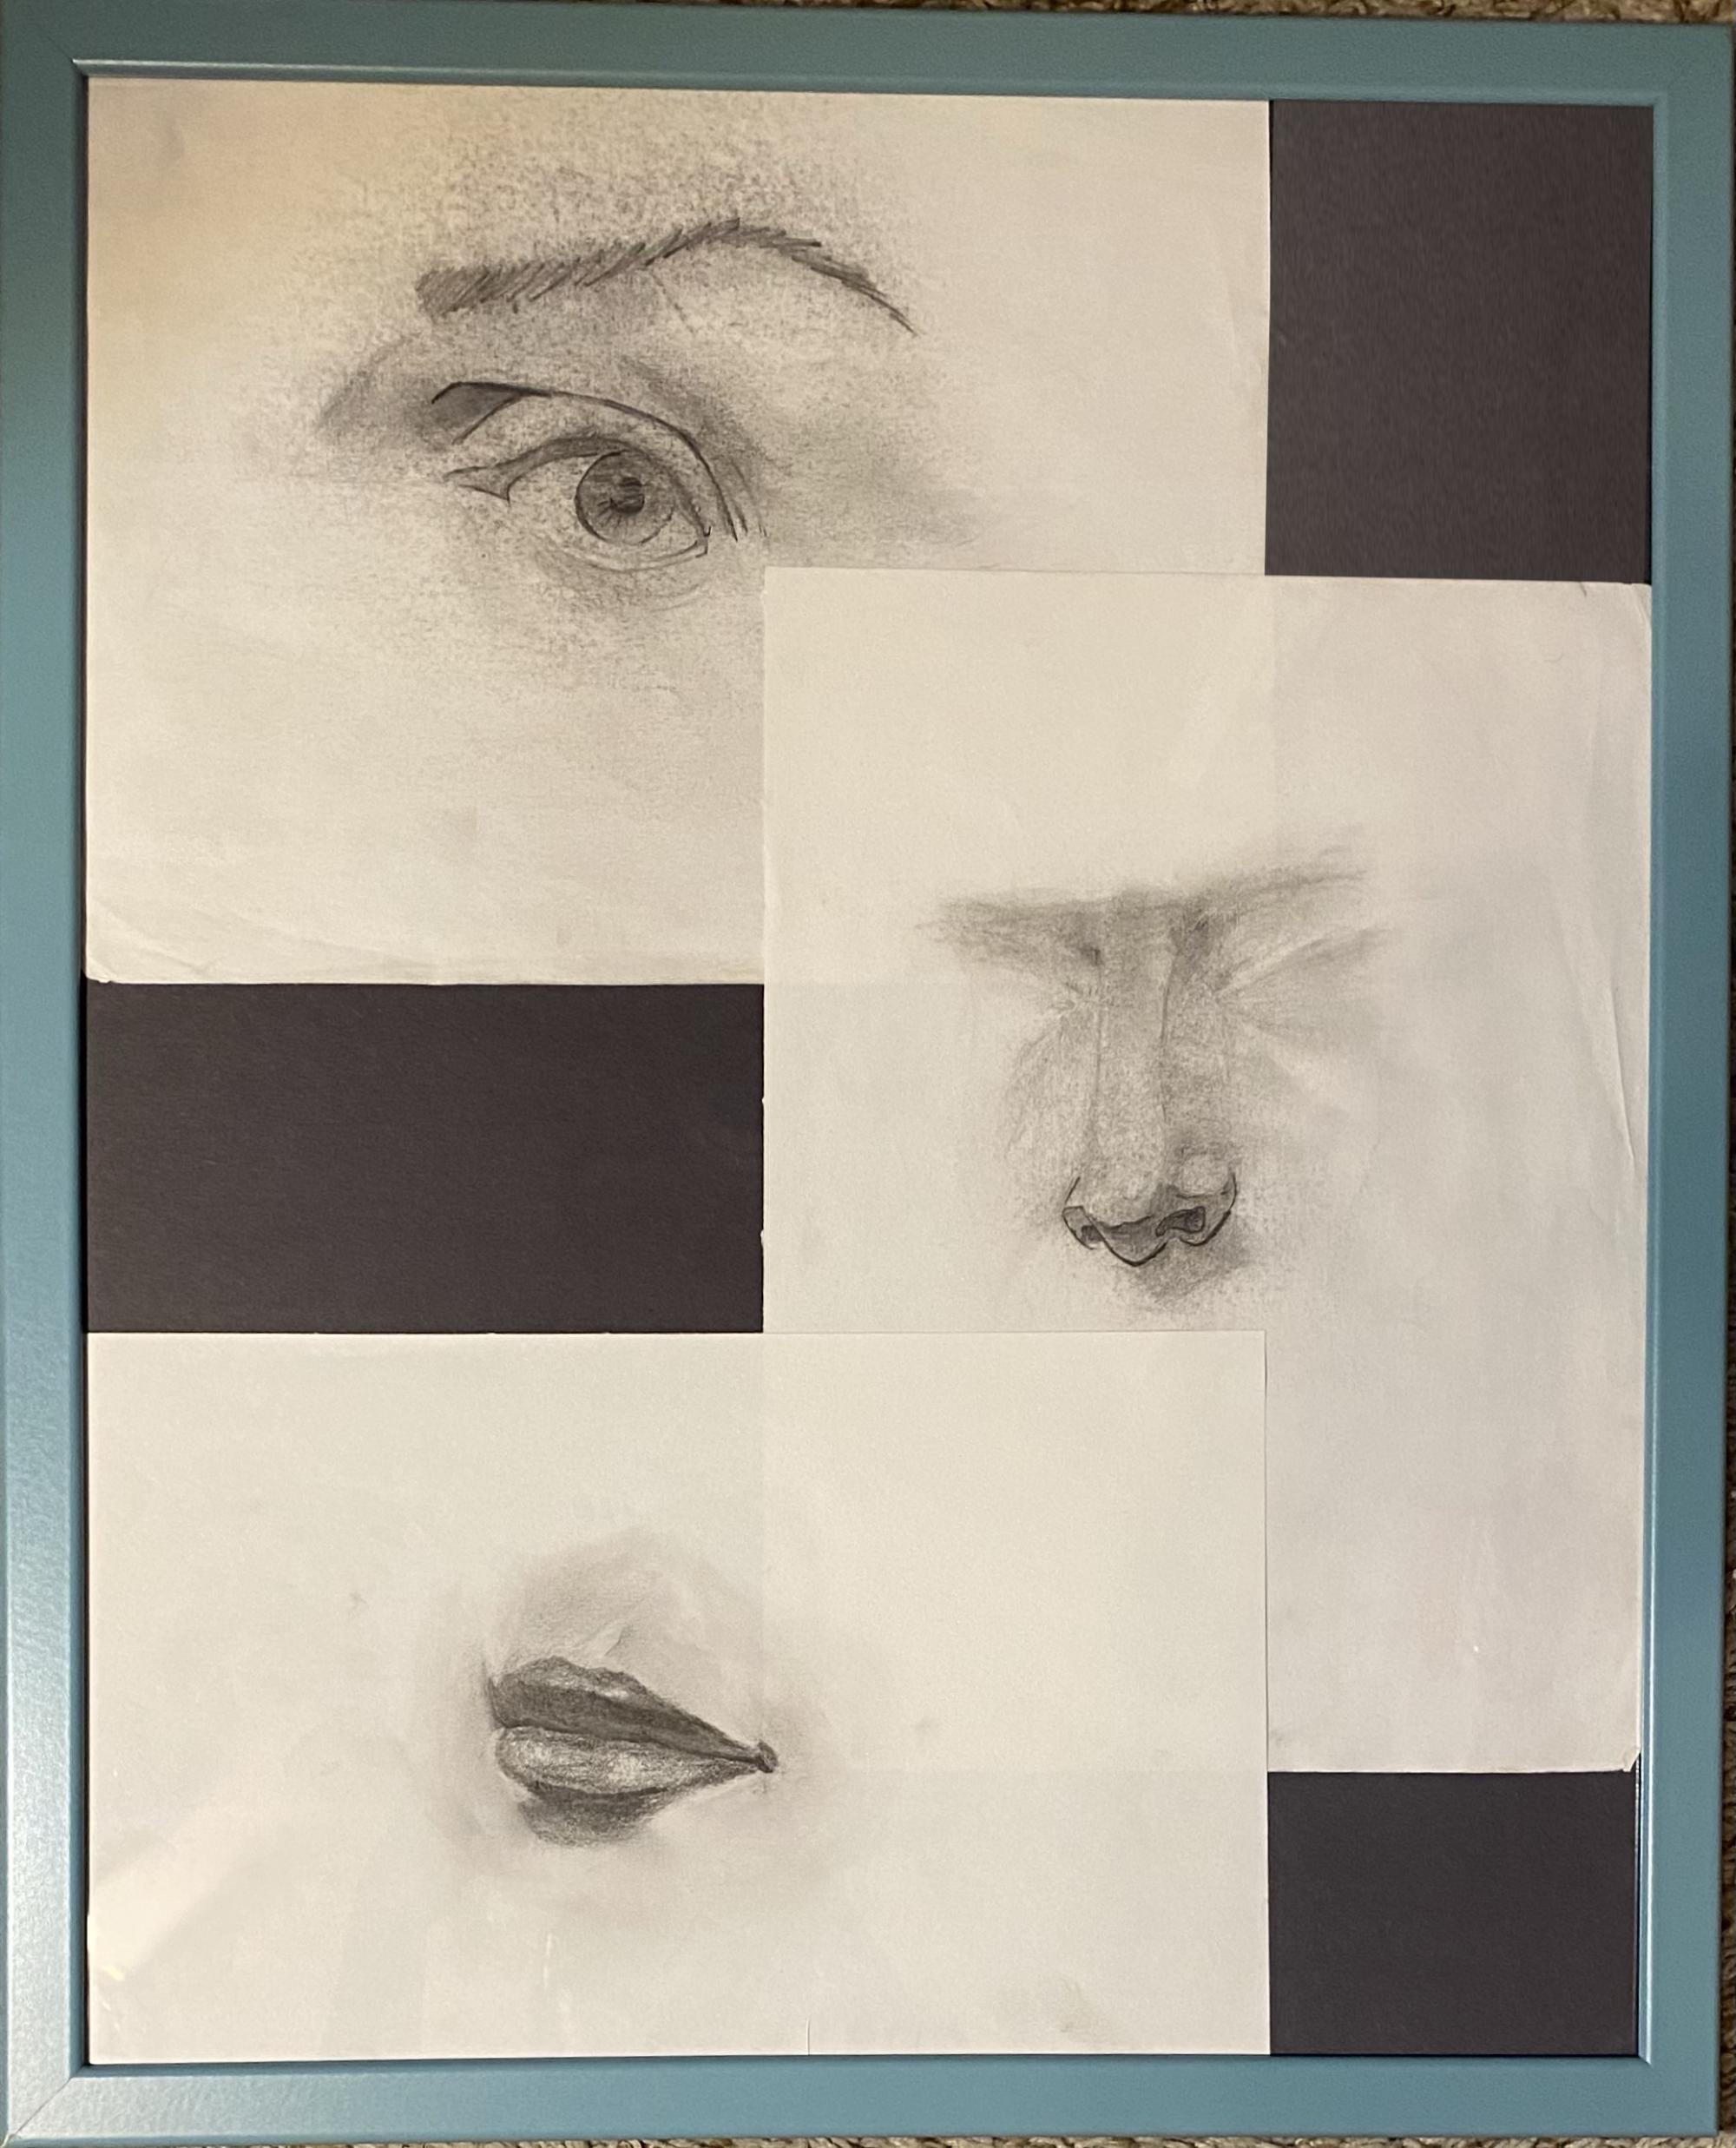 Eyes, Nose, and Mouth